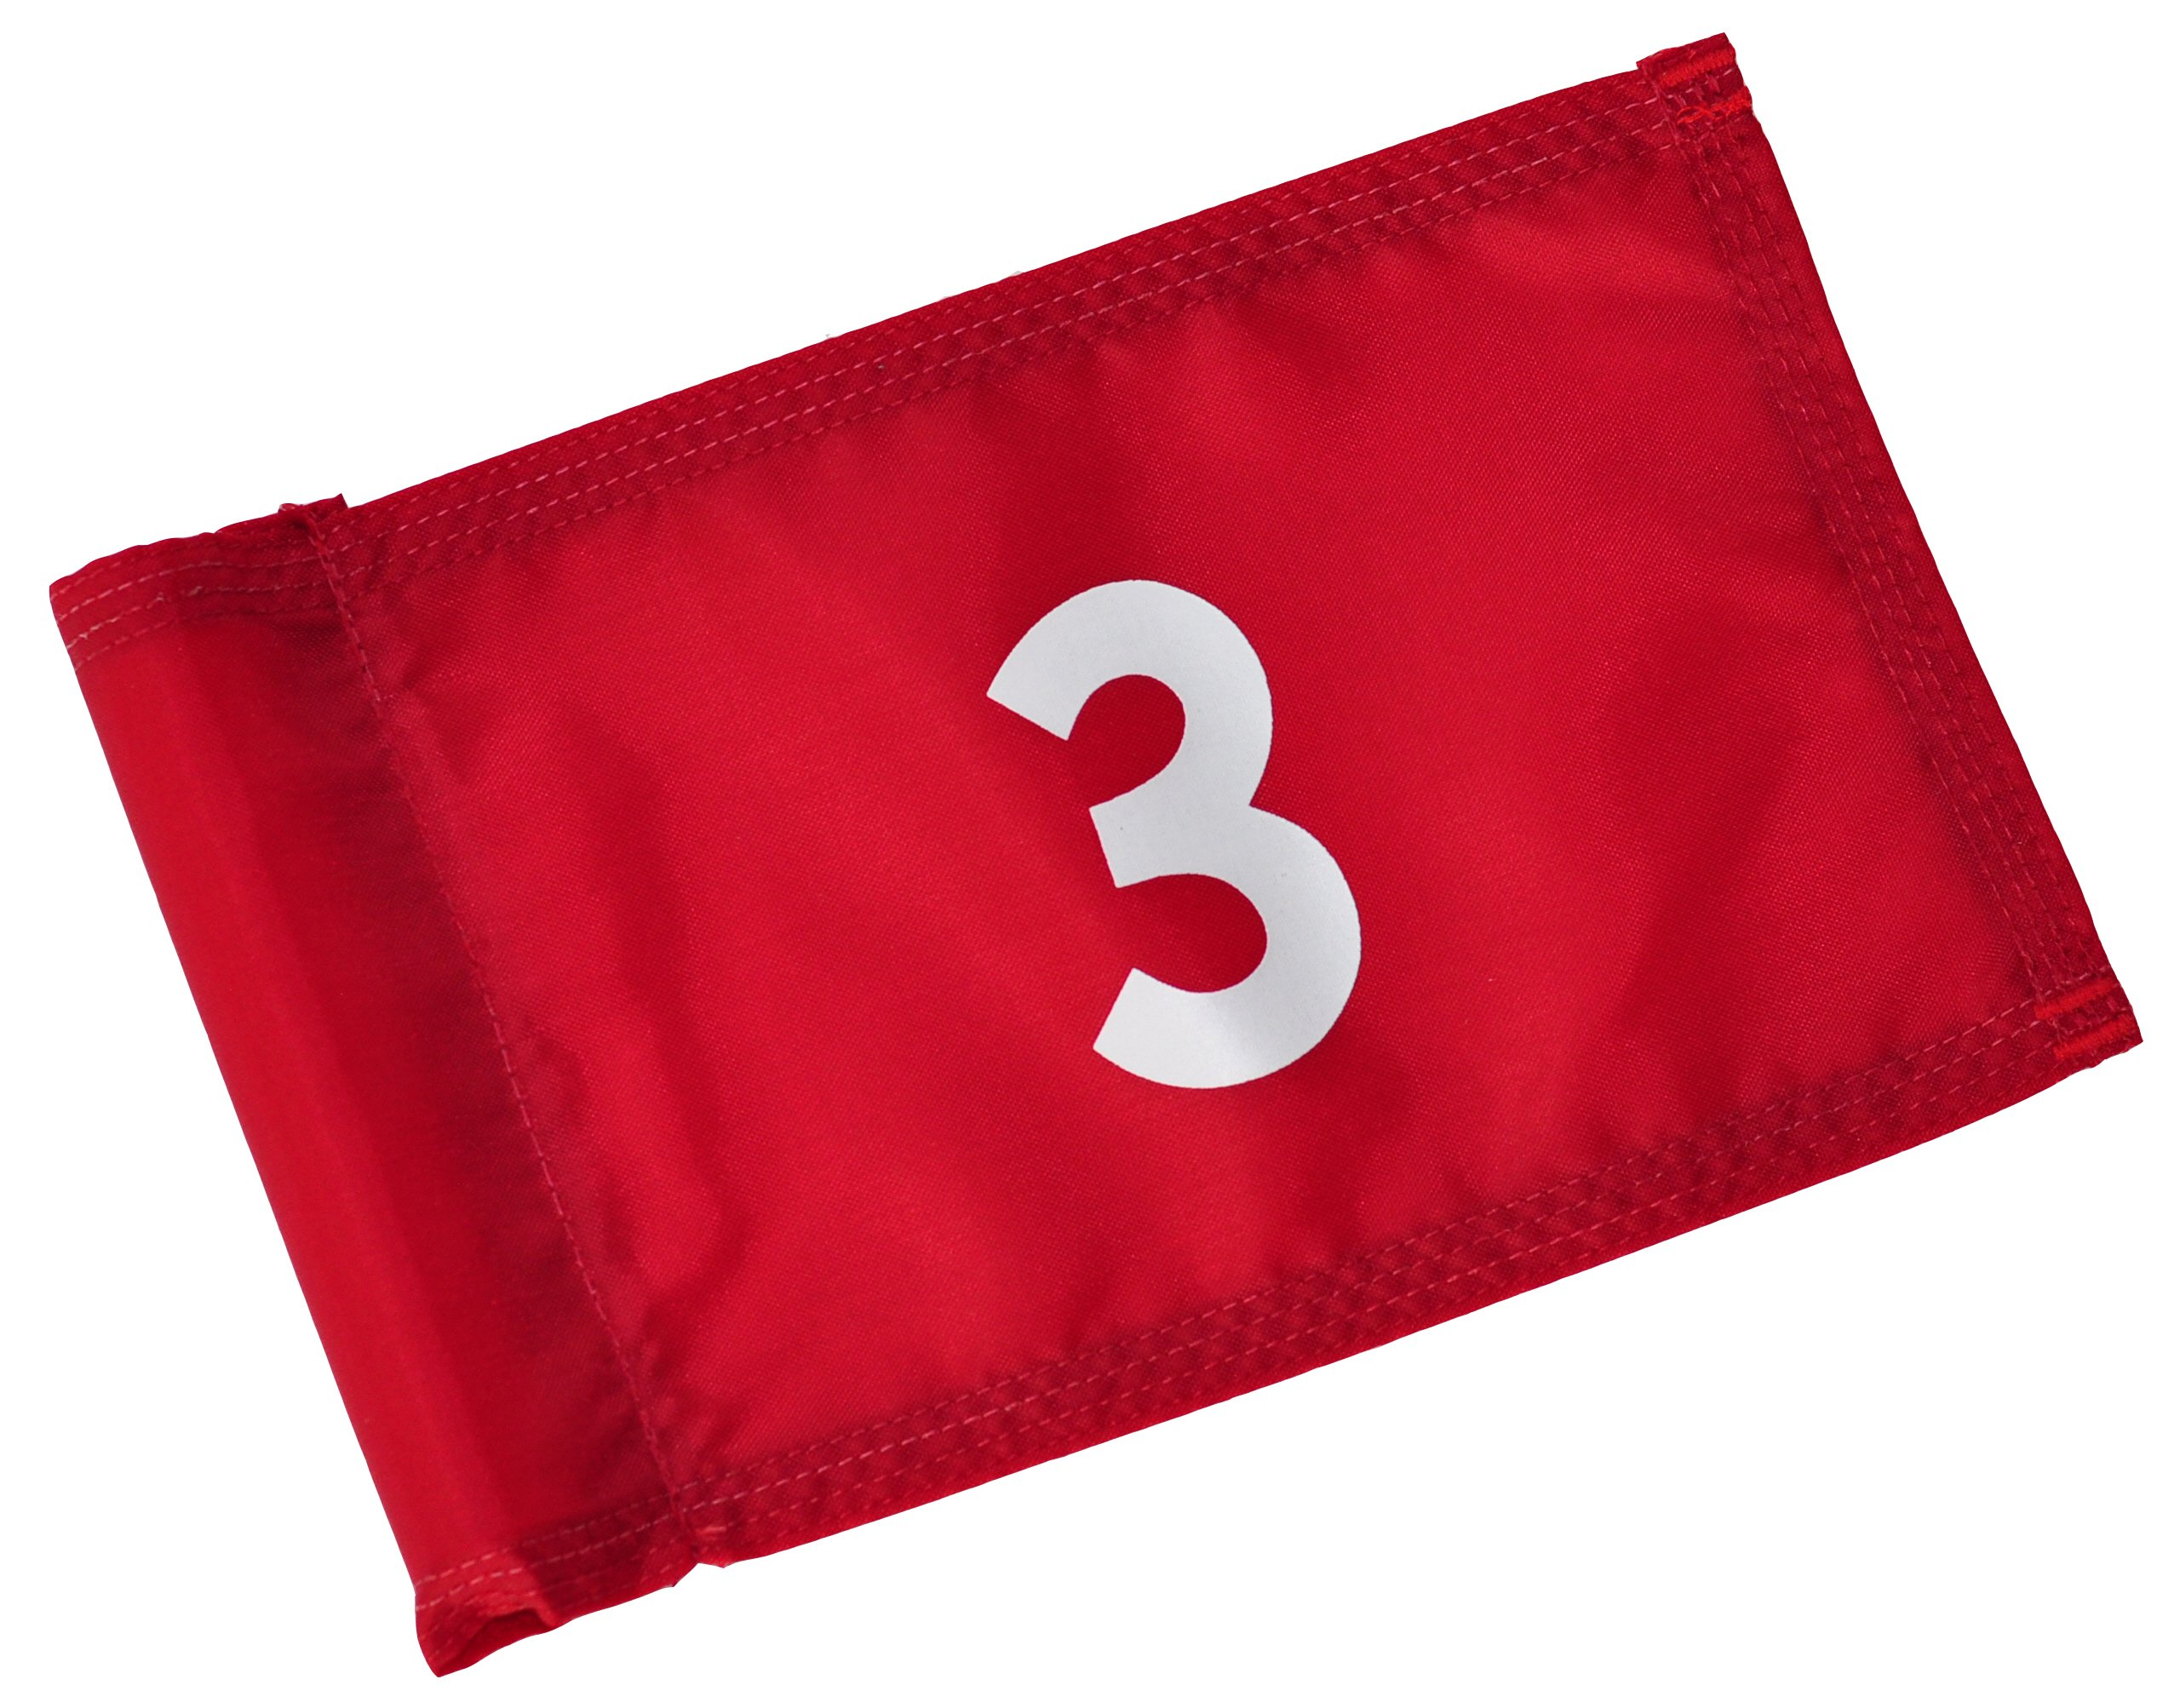 Backyard Putting Green Numbered Golf Flag - Numbered Golf Flag - Red and White 1, 2, 3, 4 (Red with White Numbers, # 3)